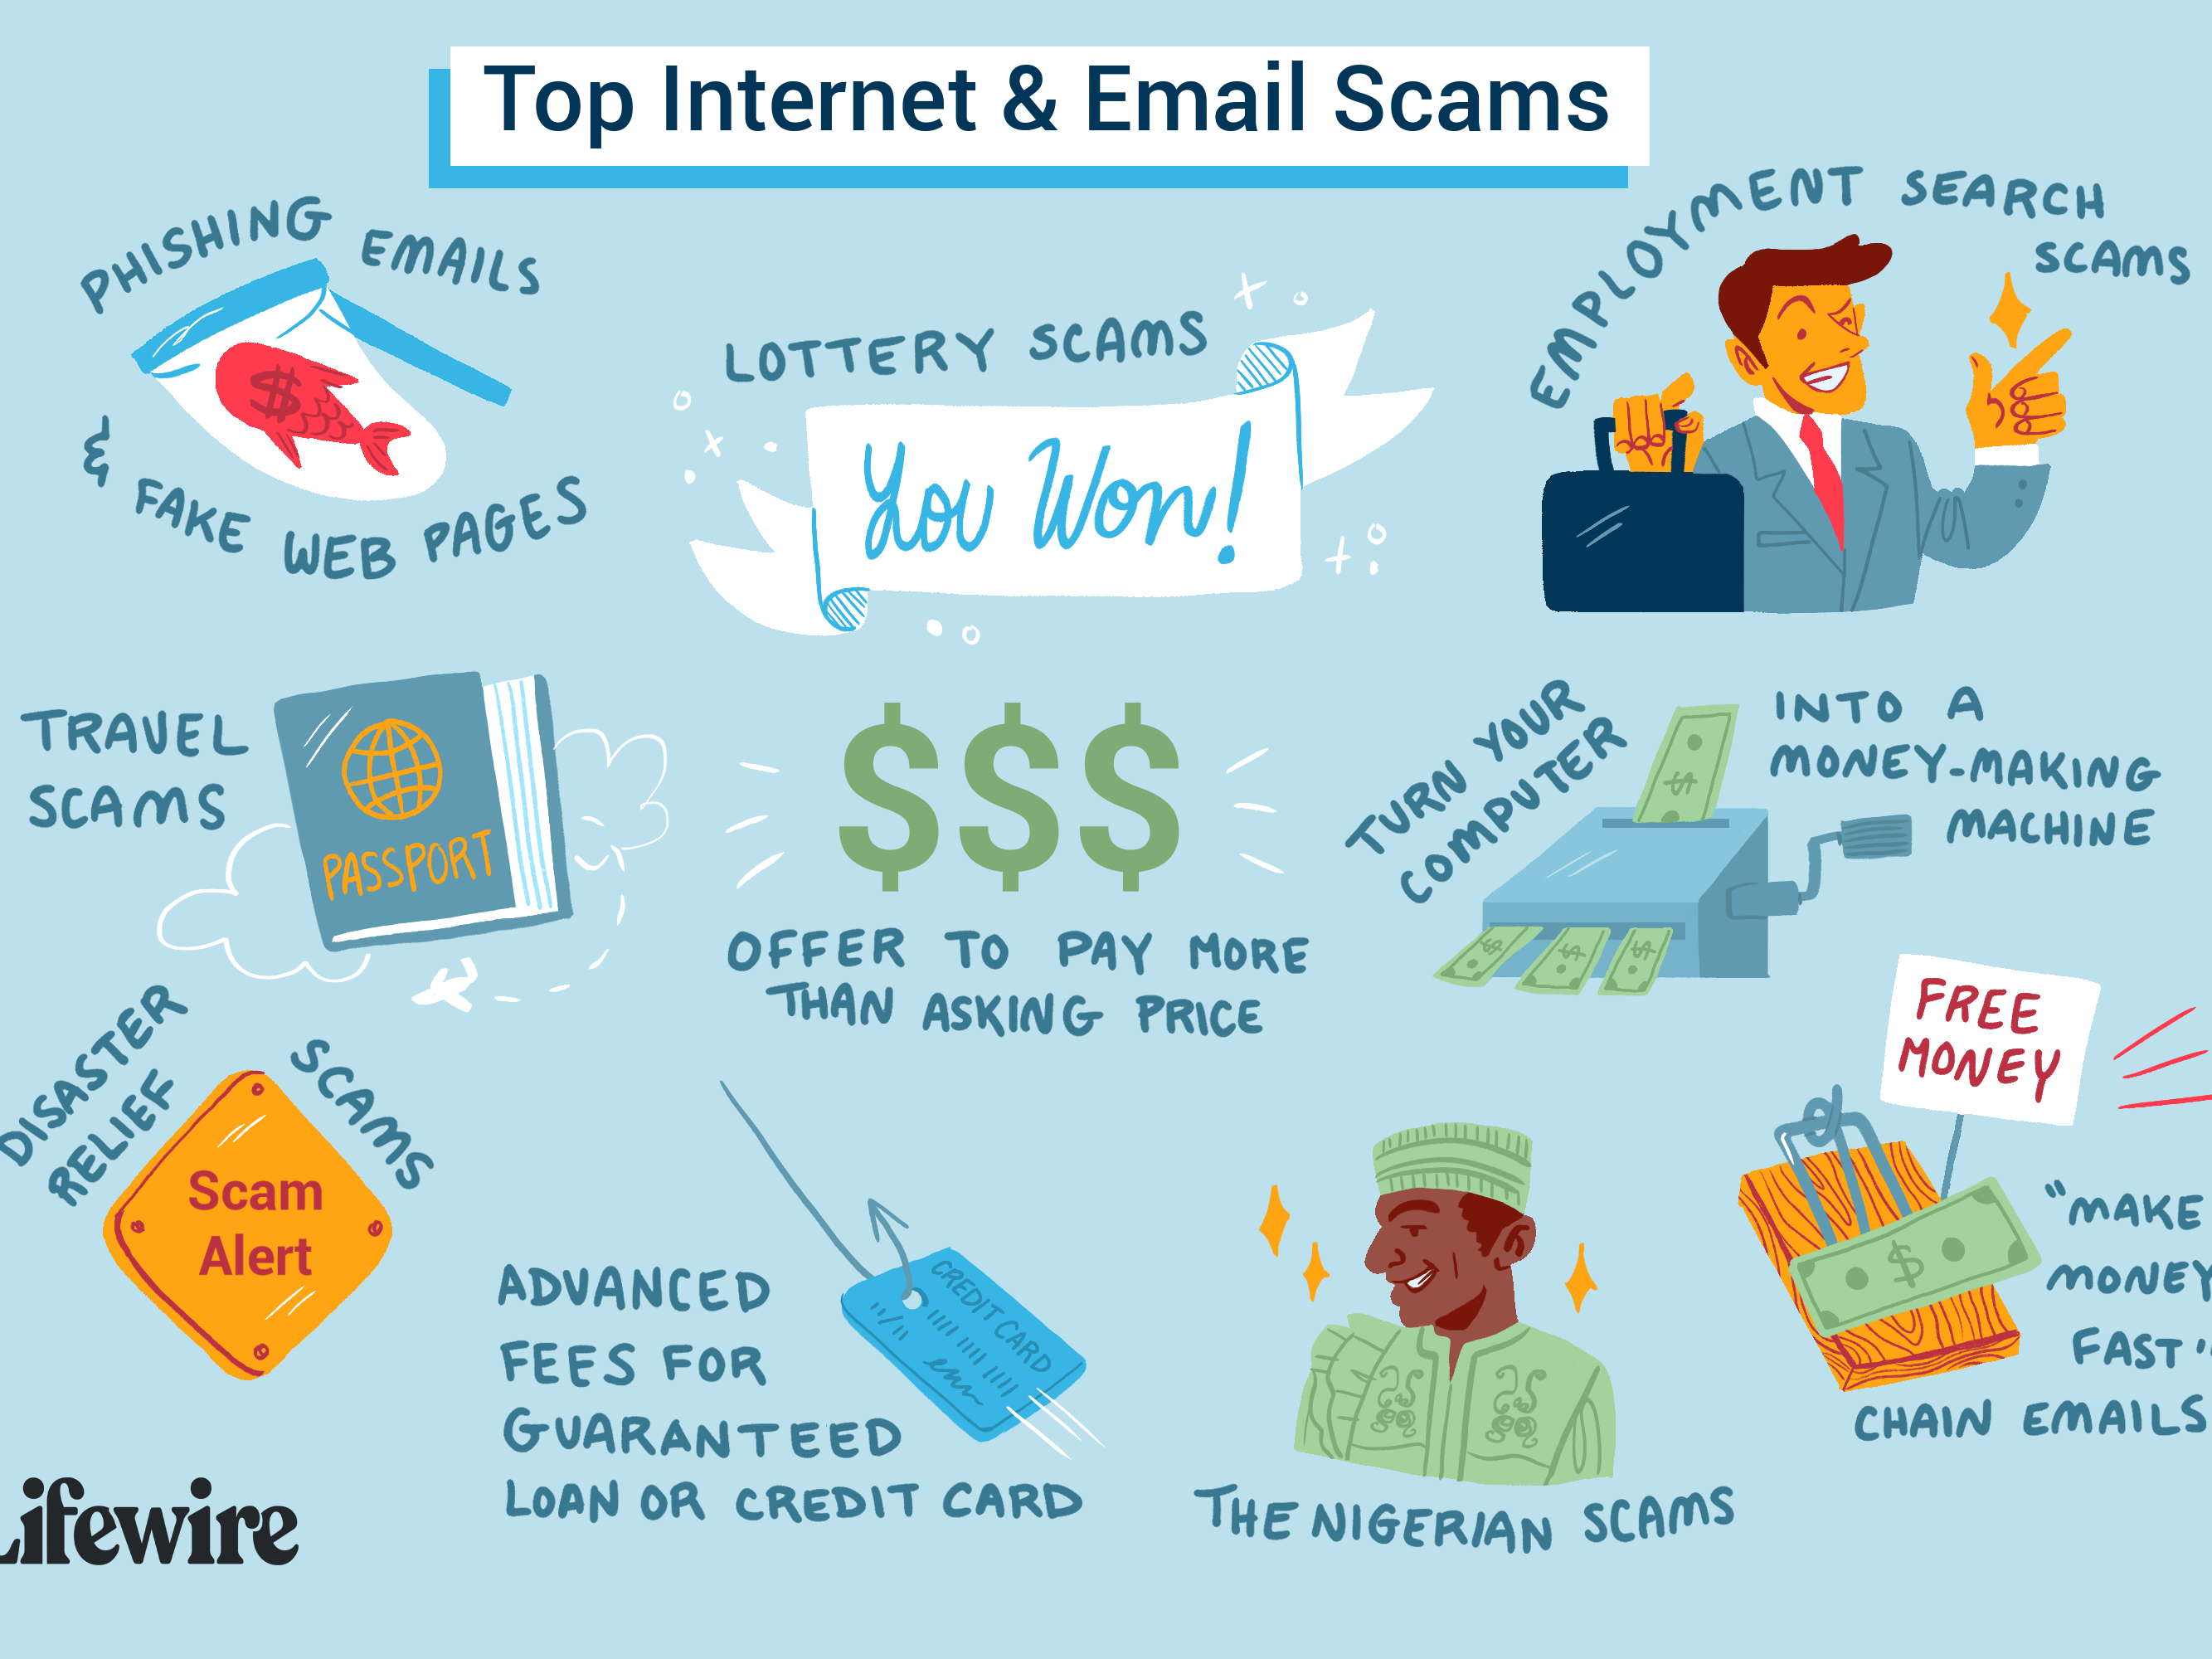 The Top 10 Email Scams